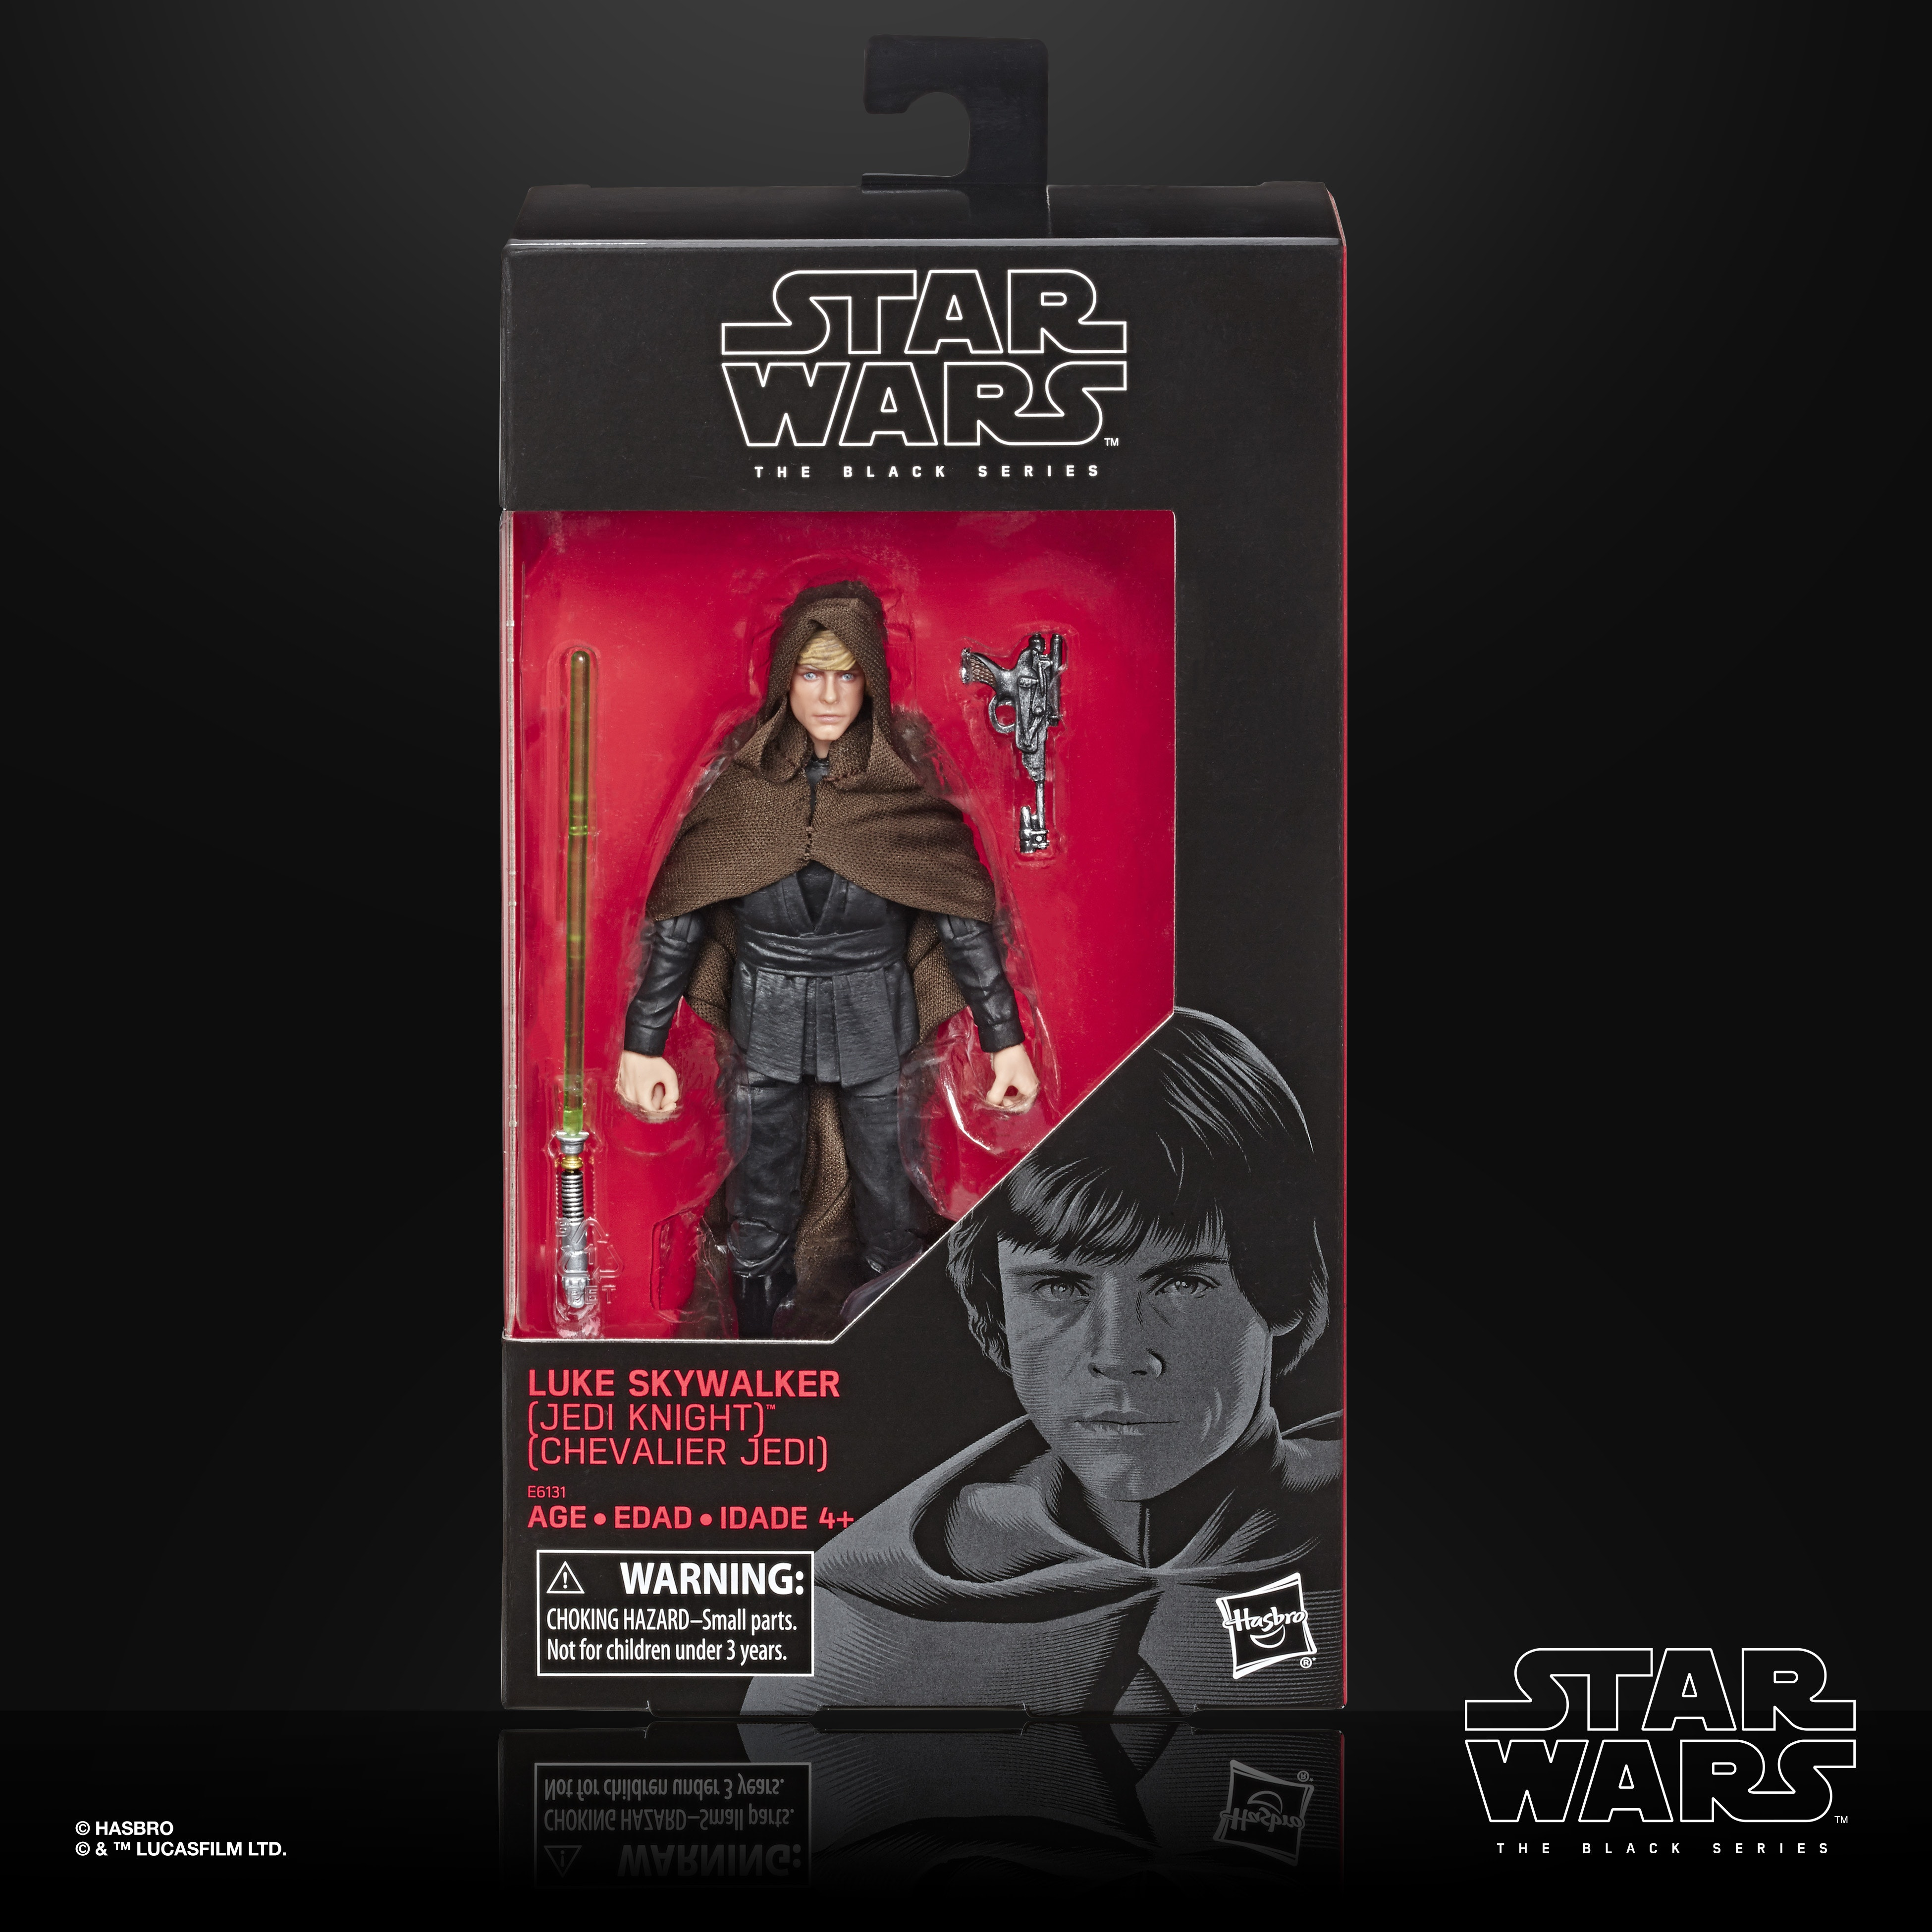 STAR WARS THE BLACK SERIES LUKE SKYWALKER Jedi Knight